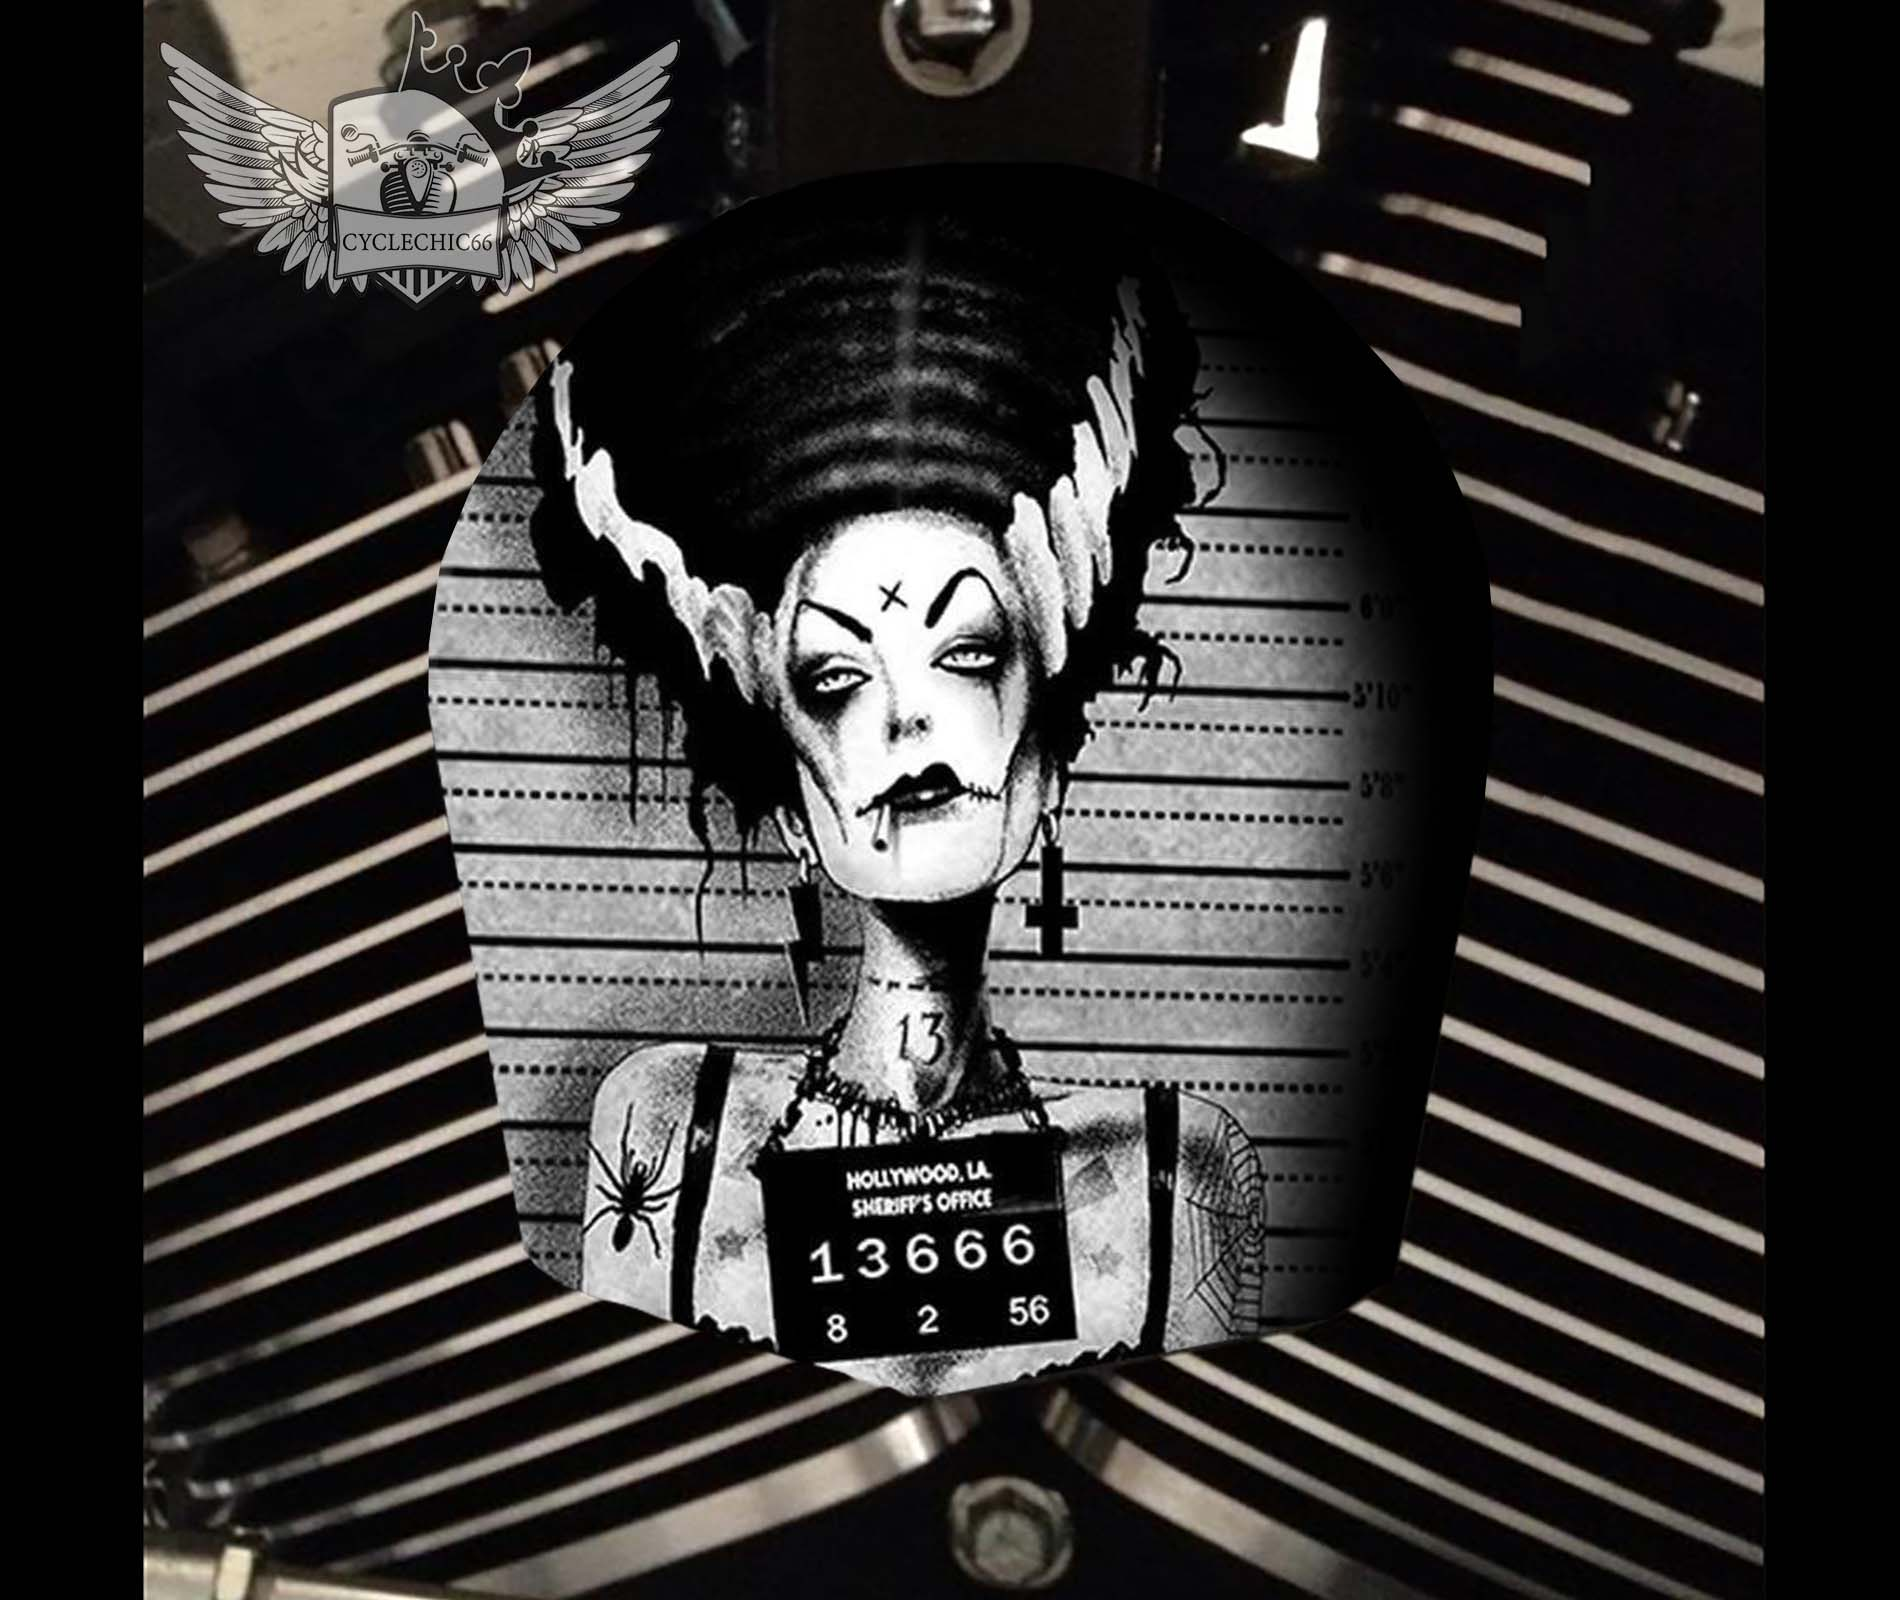 Harley Davidson Horn Cover - Bride of Frankenstein